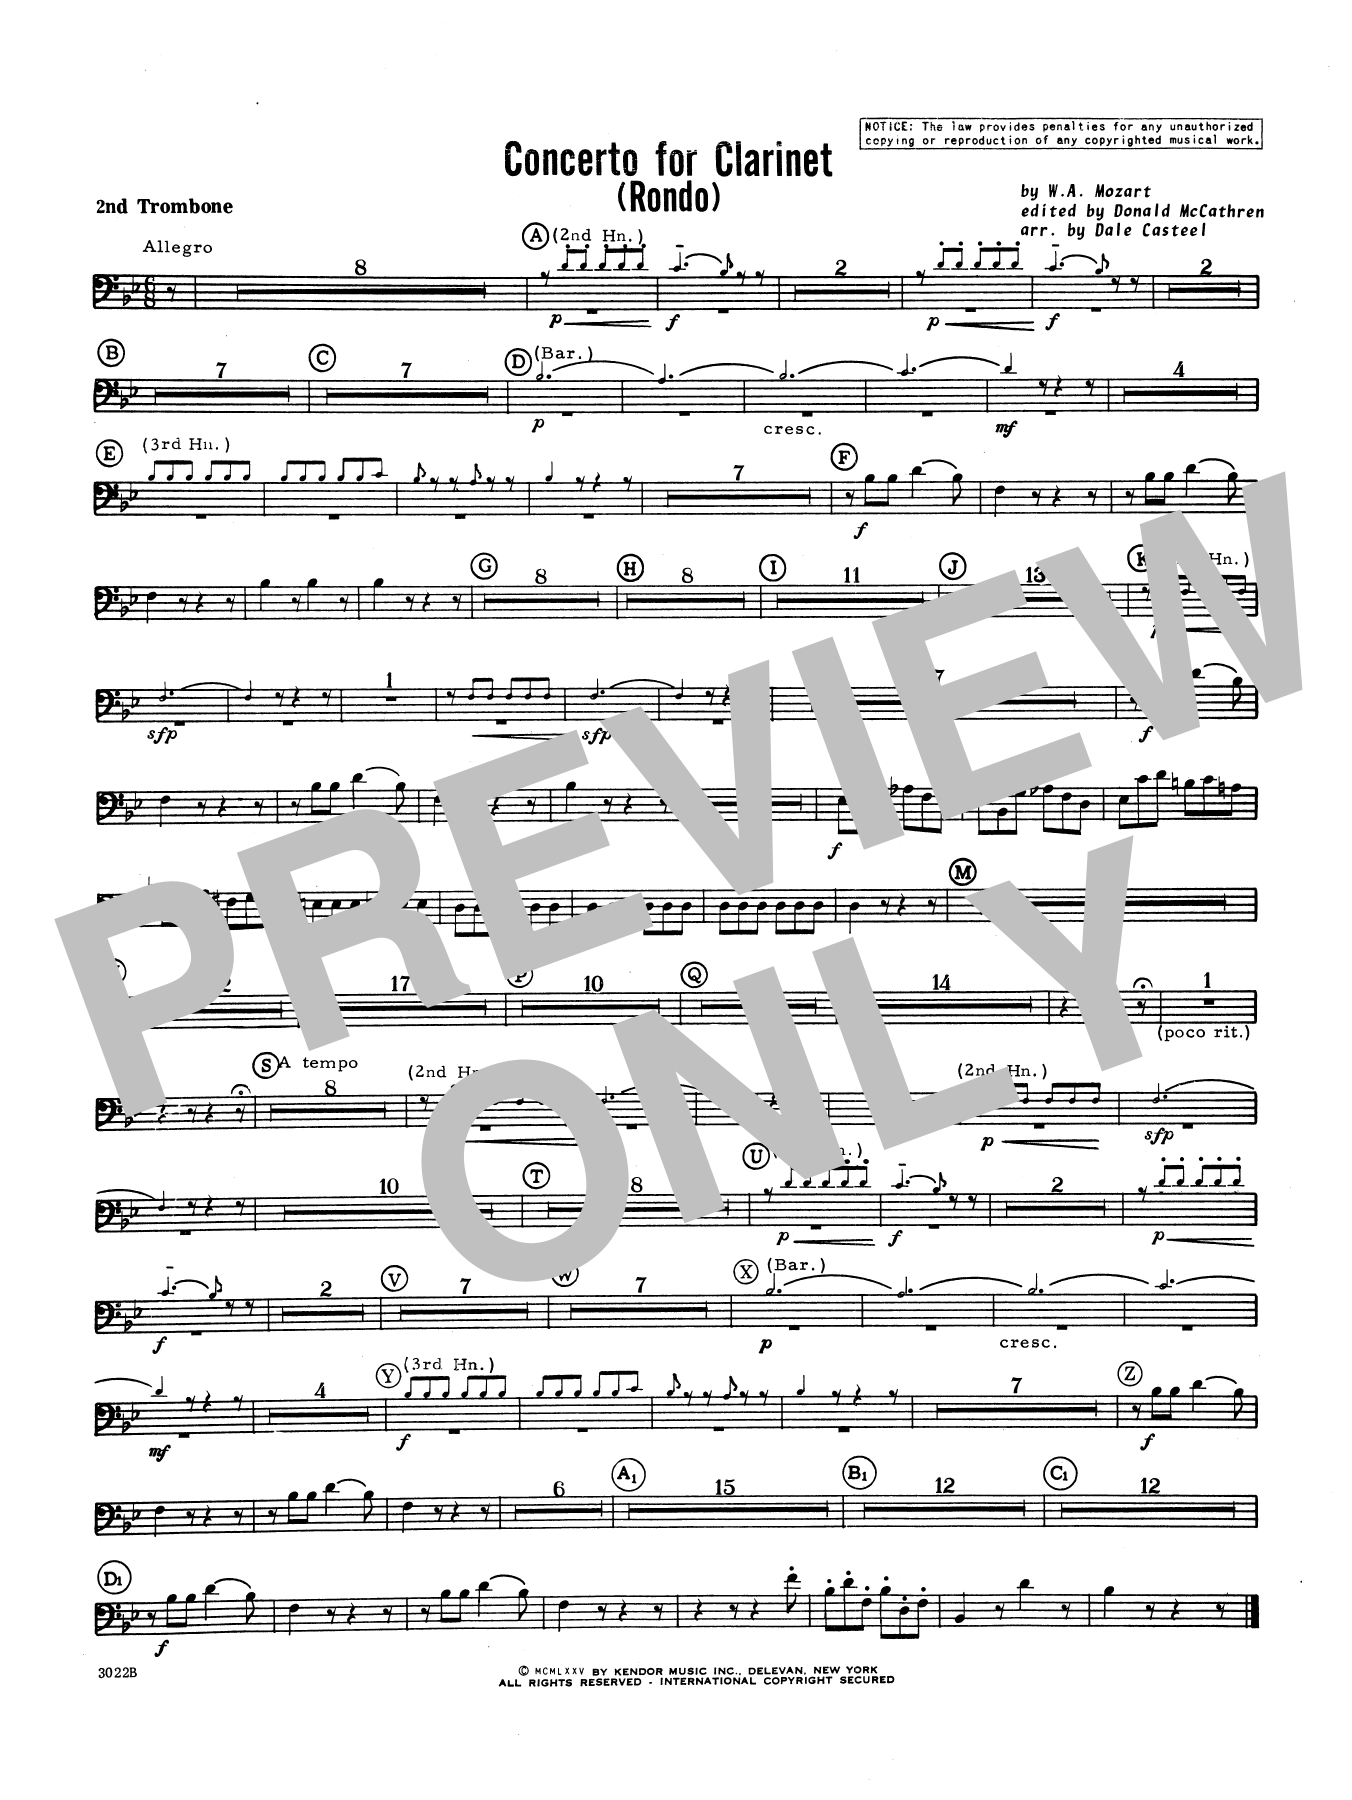 Donald McCathren and Dale Casteel Concerto For Clarinet - Rondo (3rd Movement) - K.622 - 2nd Trombone sheet music notes printable PDF score